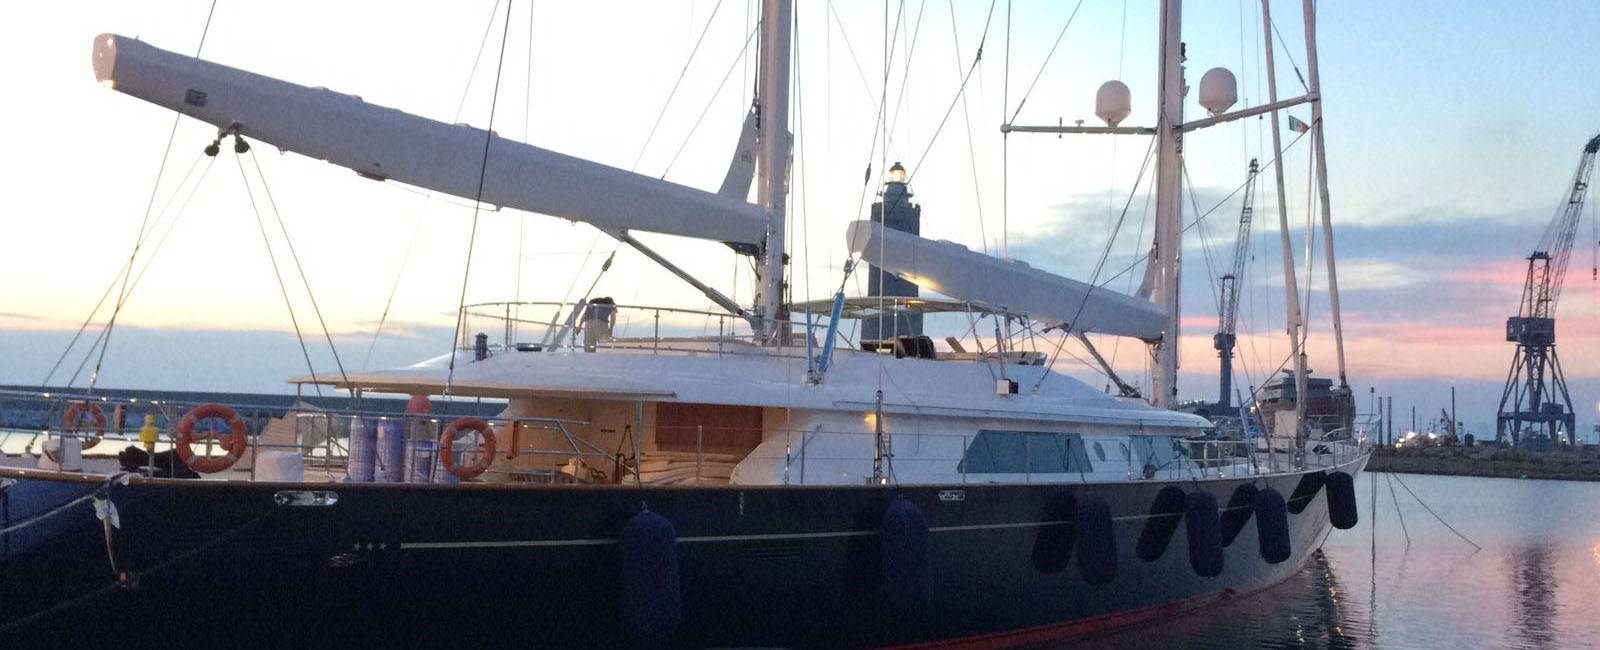 Rigging project Perrini Navi